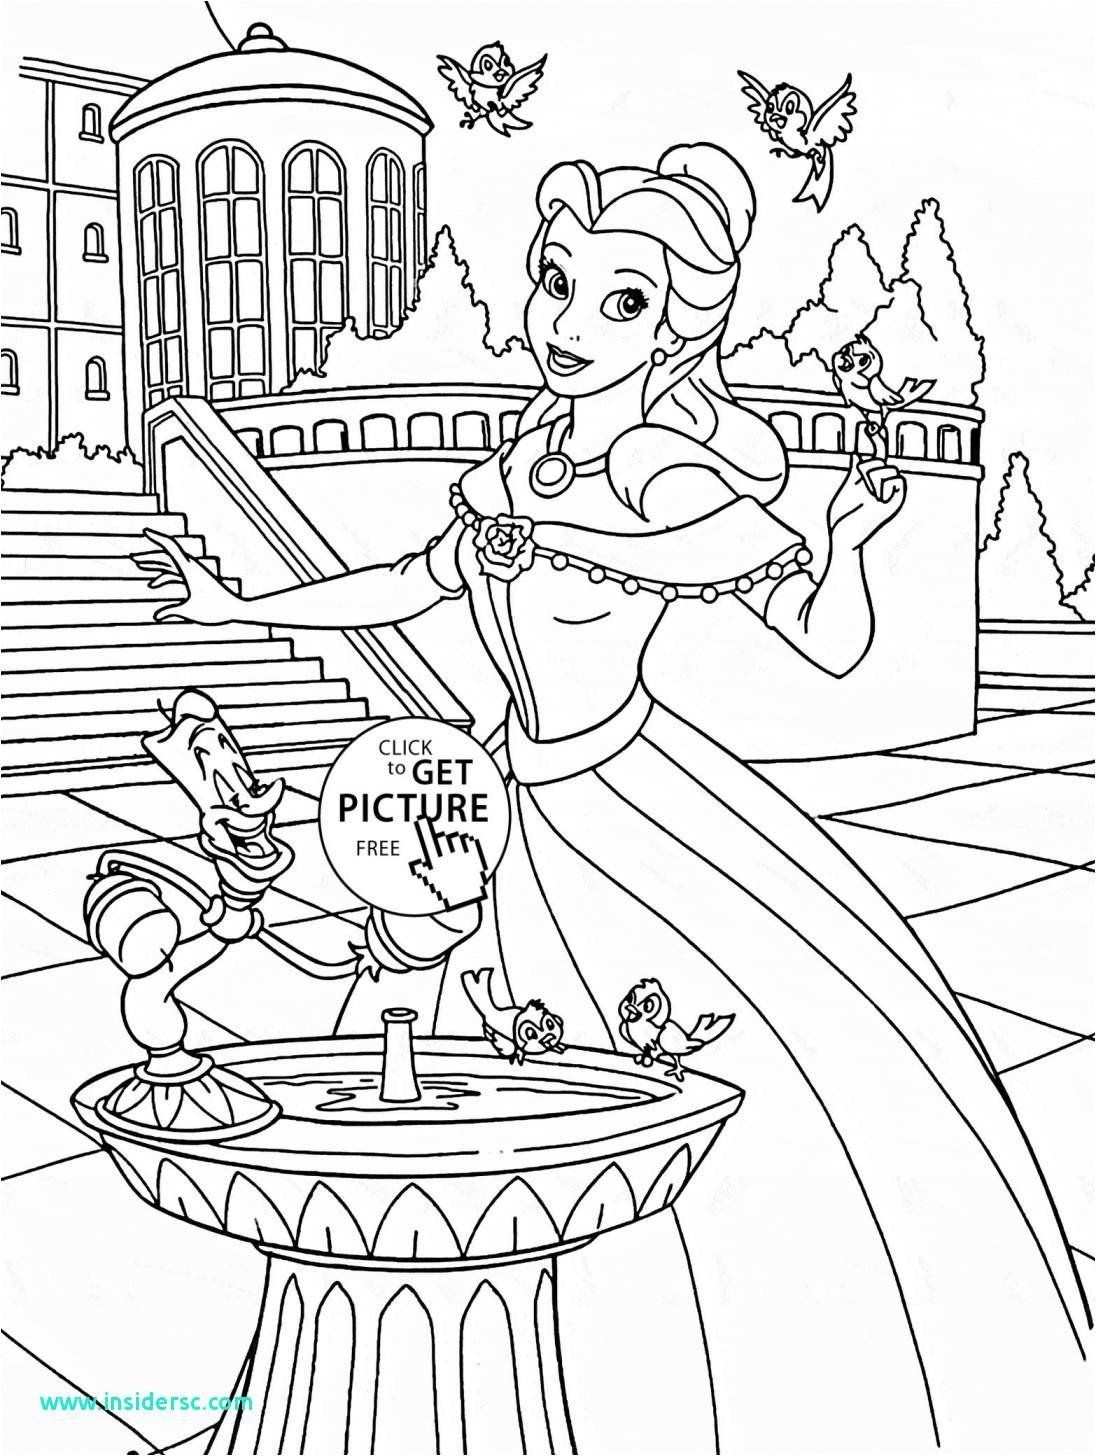 Anime Coloring Books for Adults Awesome Elegant